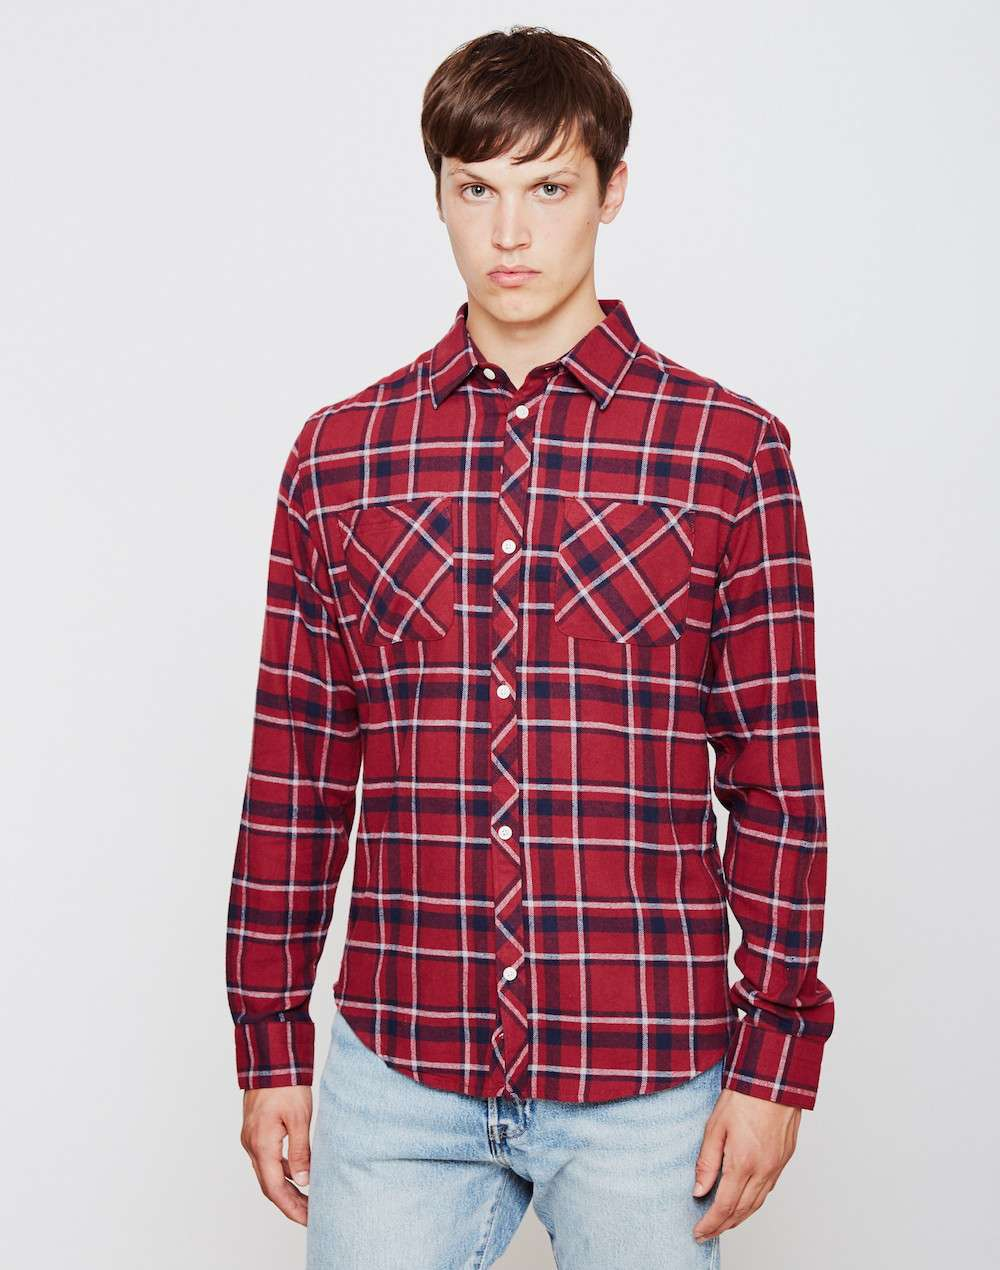 THE IDLE MAN Pocket Flannel Shirt Burgundy mens